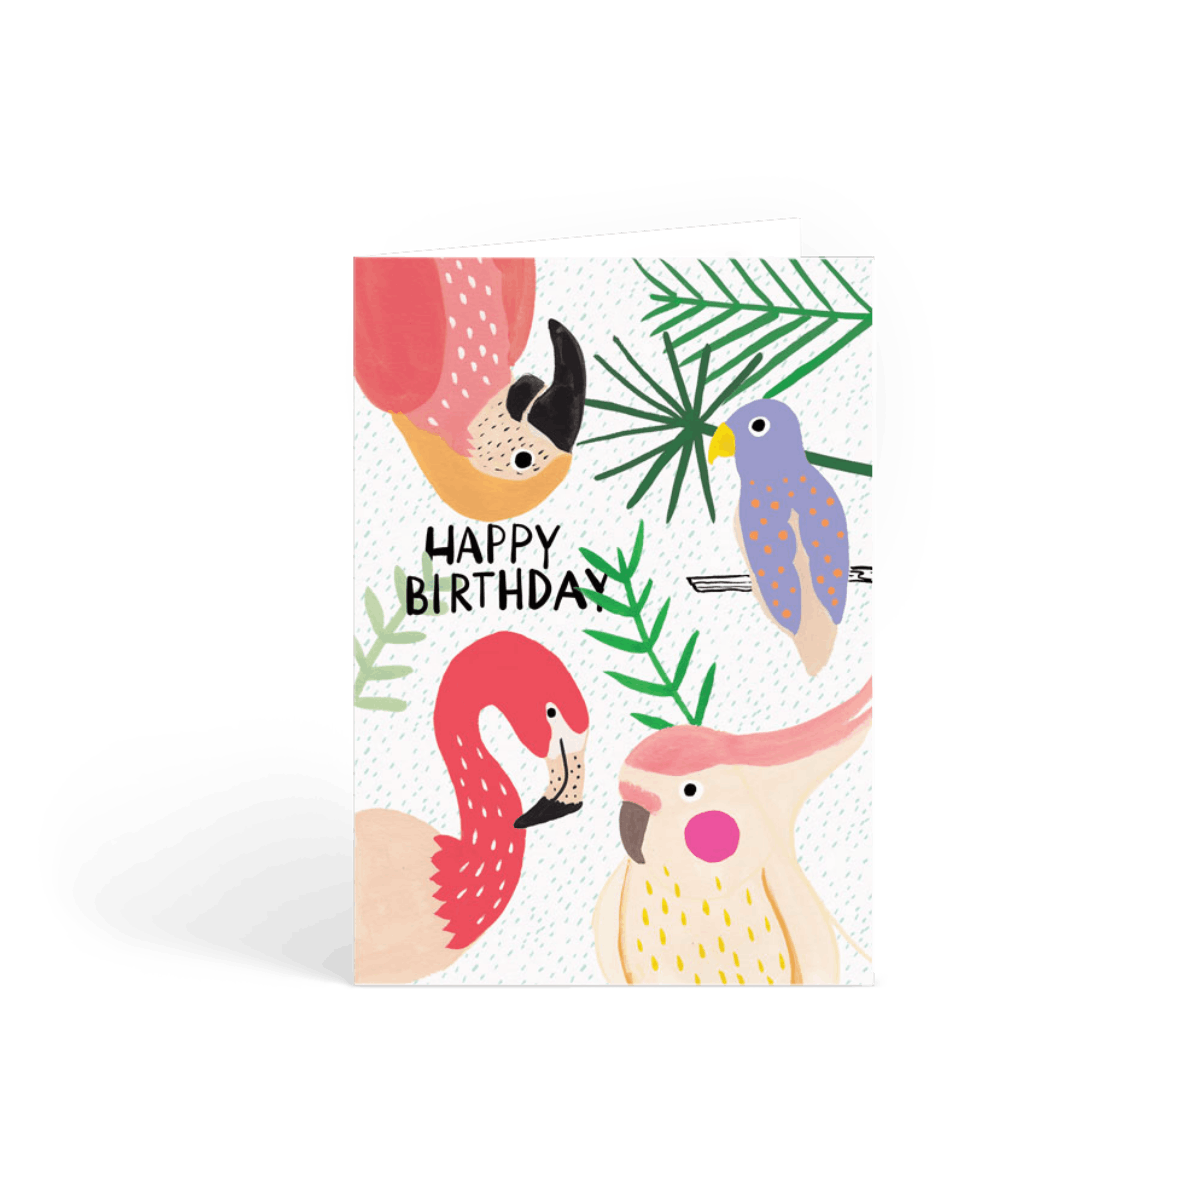 Https%3a%2f%2fwww.papier.com%2fproduct image%2f11549%2f2%2ftropical birds 2928 front 1475498394.png?ixlib=rb 1.1